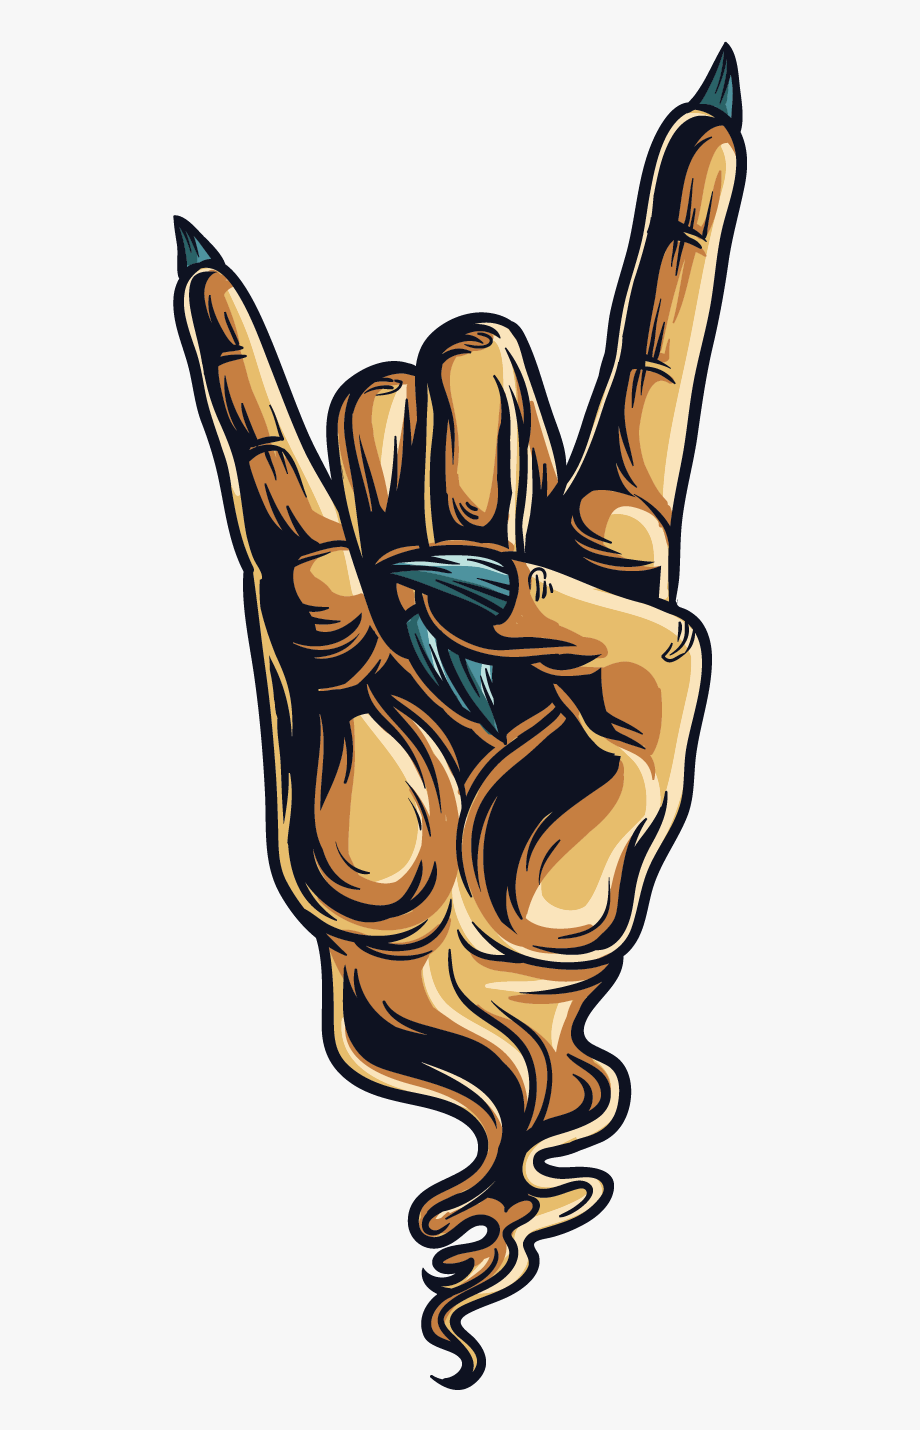 Horn clipart hand. Sign of the horns